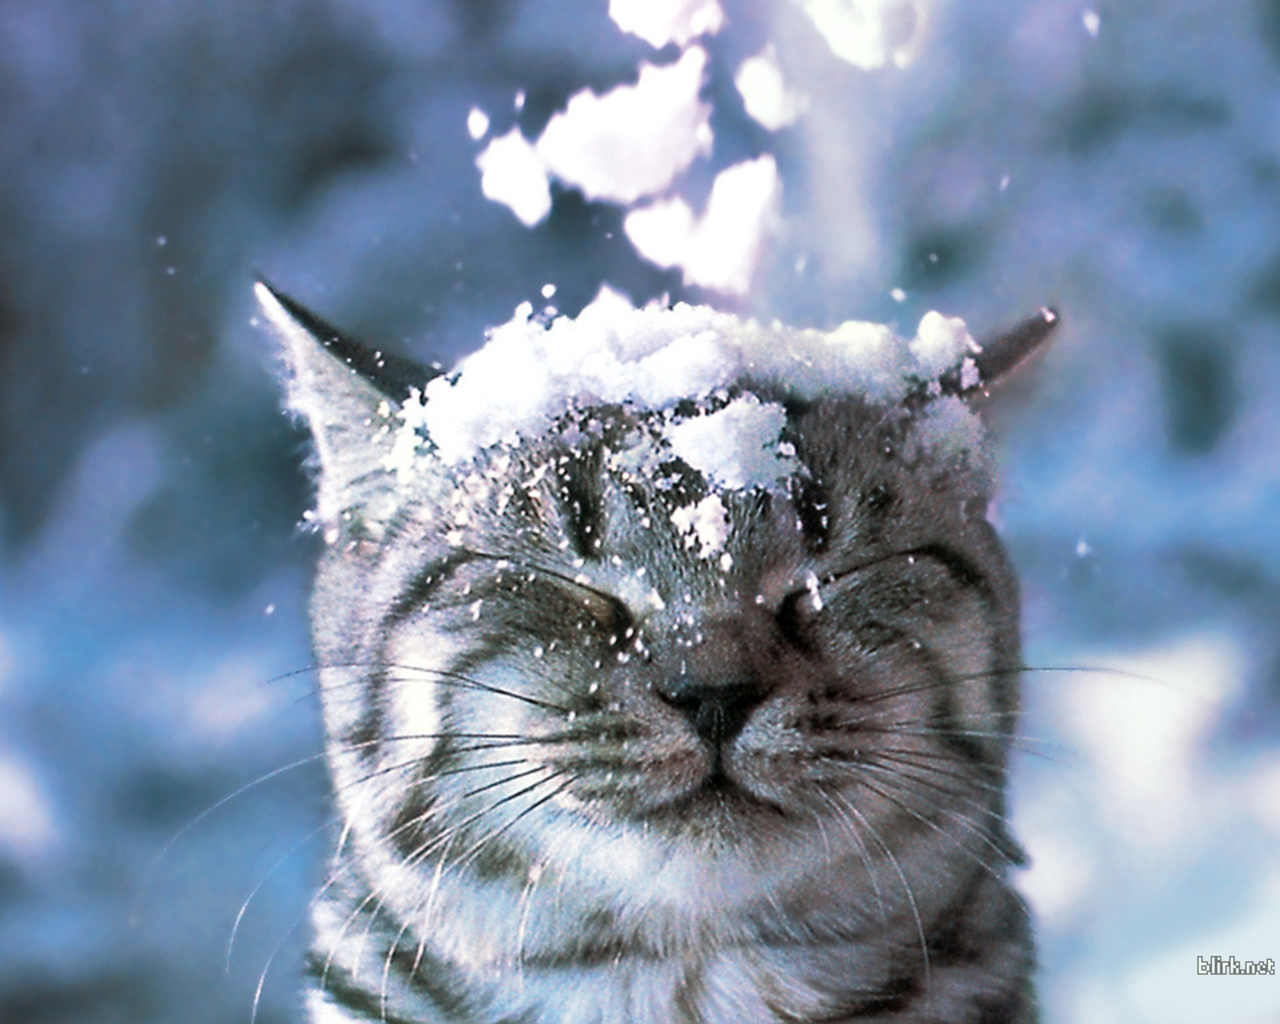 44+] Cats in Snow Wallpaper on WallpaperSafari